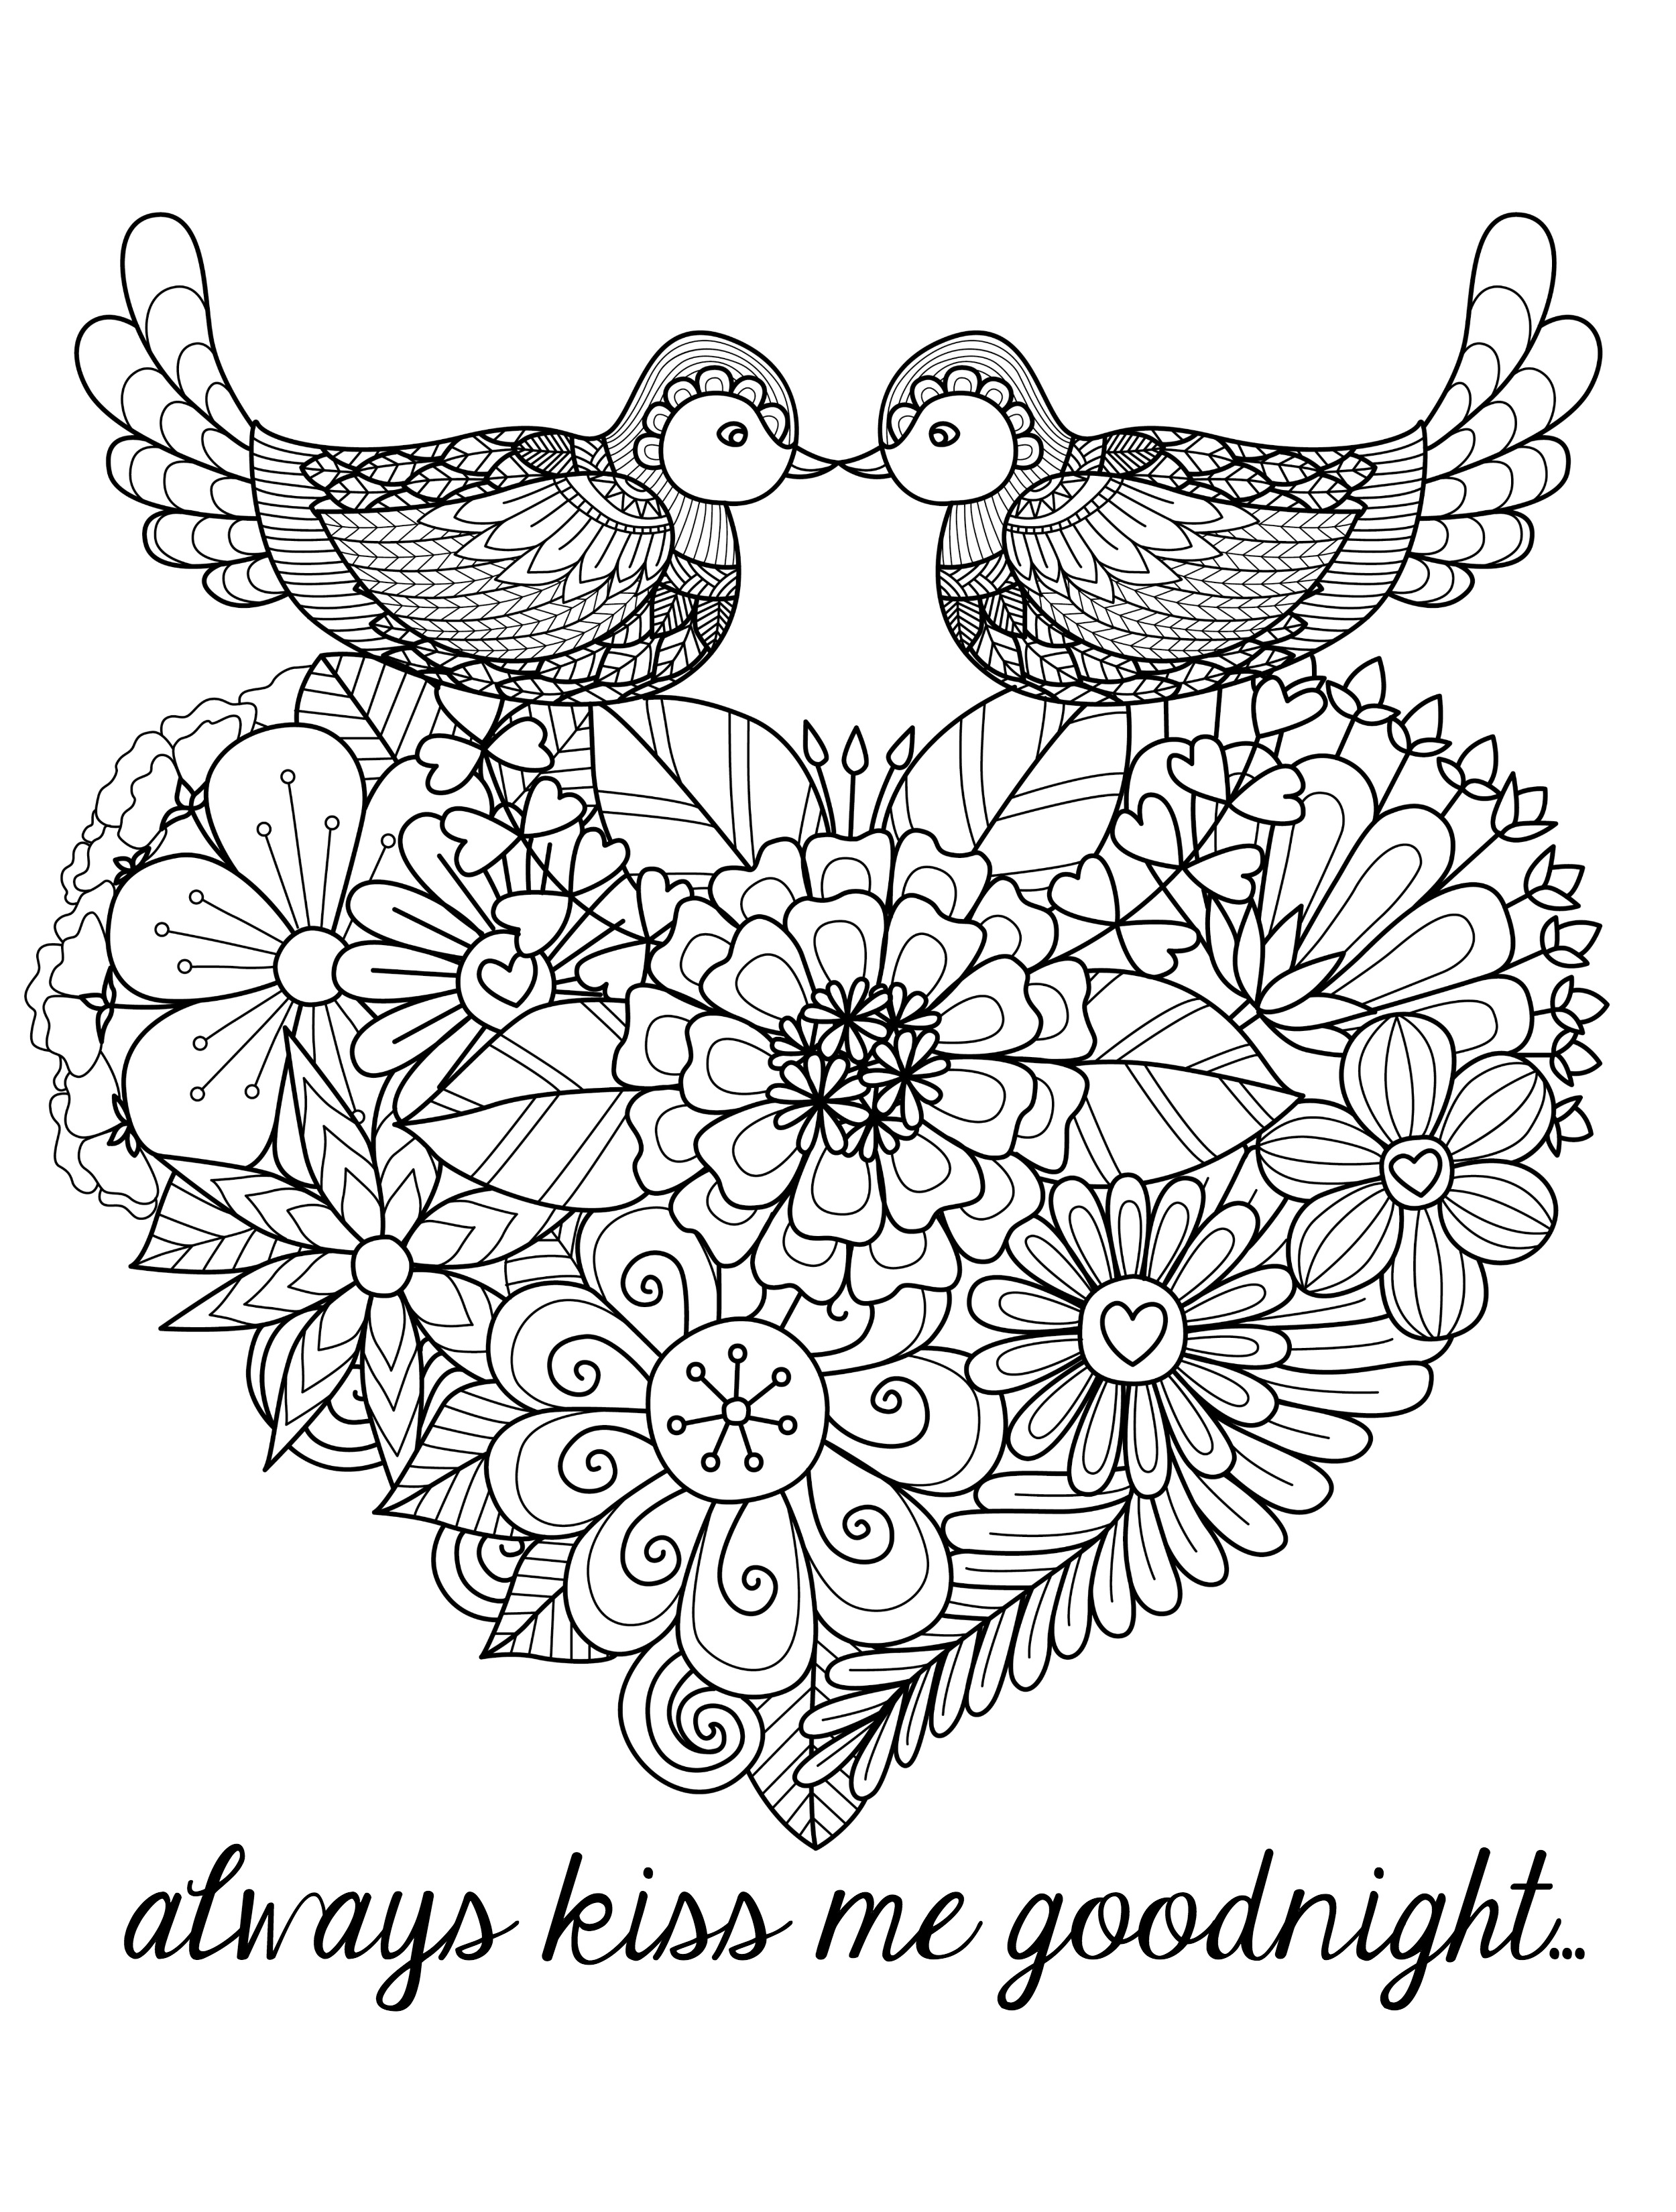 coloring pages of adults serendipity adult coloring pages printable of pages coloring adults